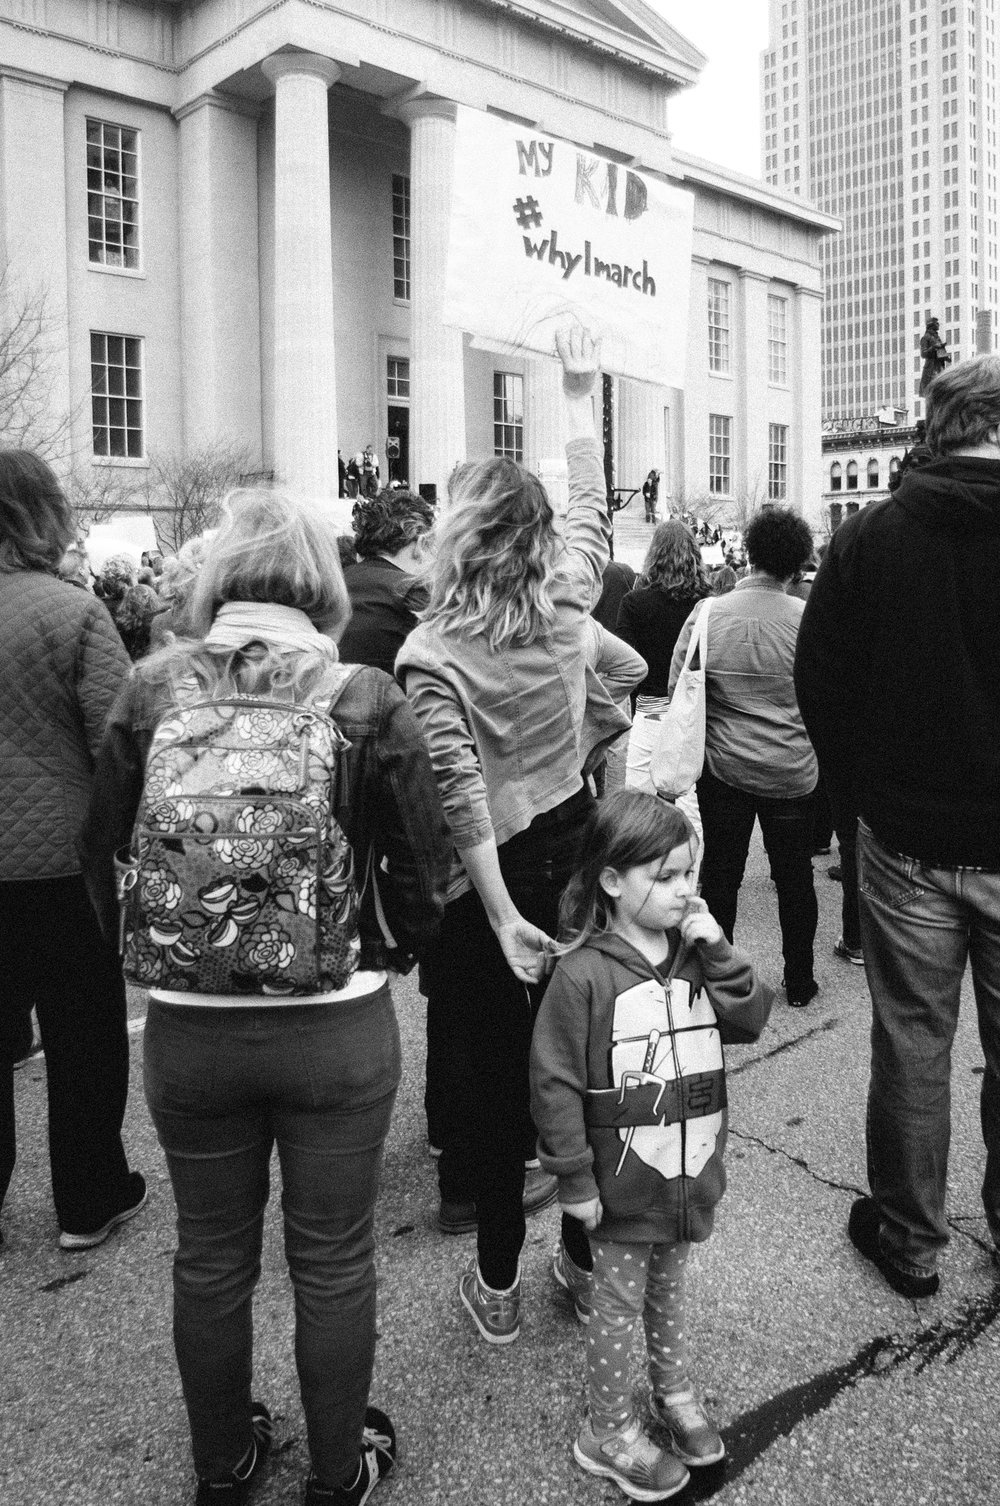 rally to move forward louisville protest trump-12.jpg